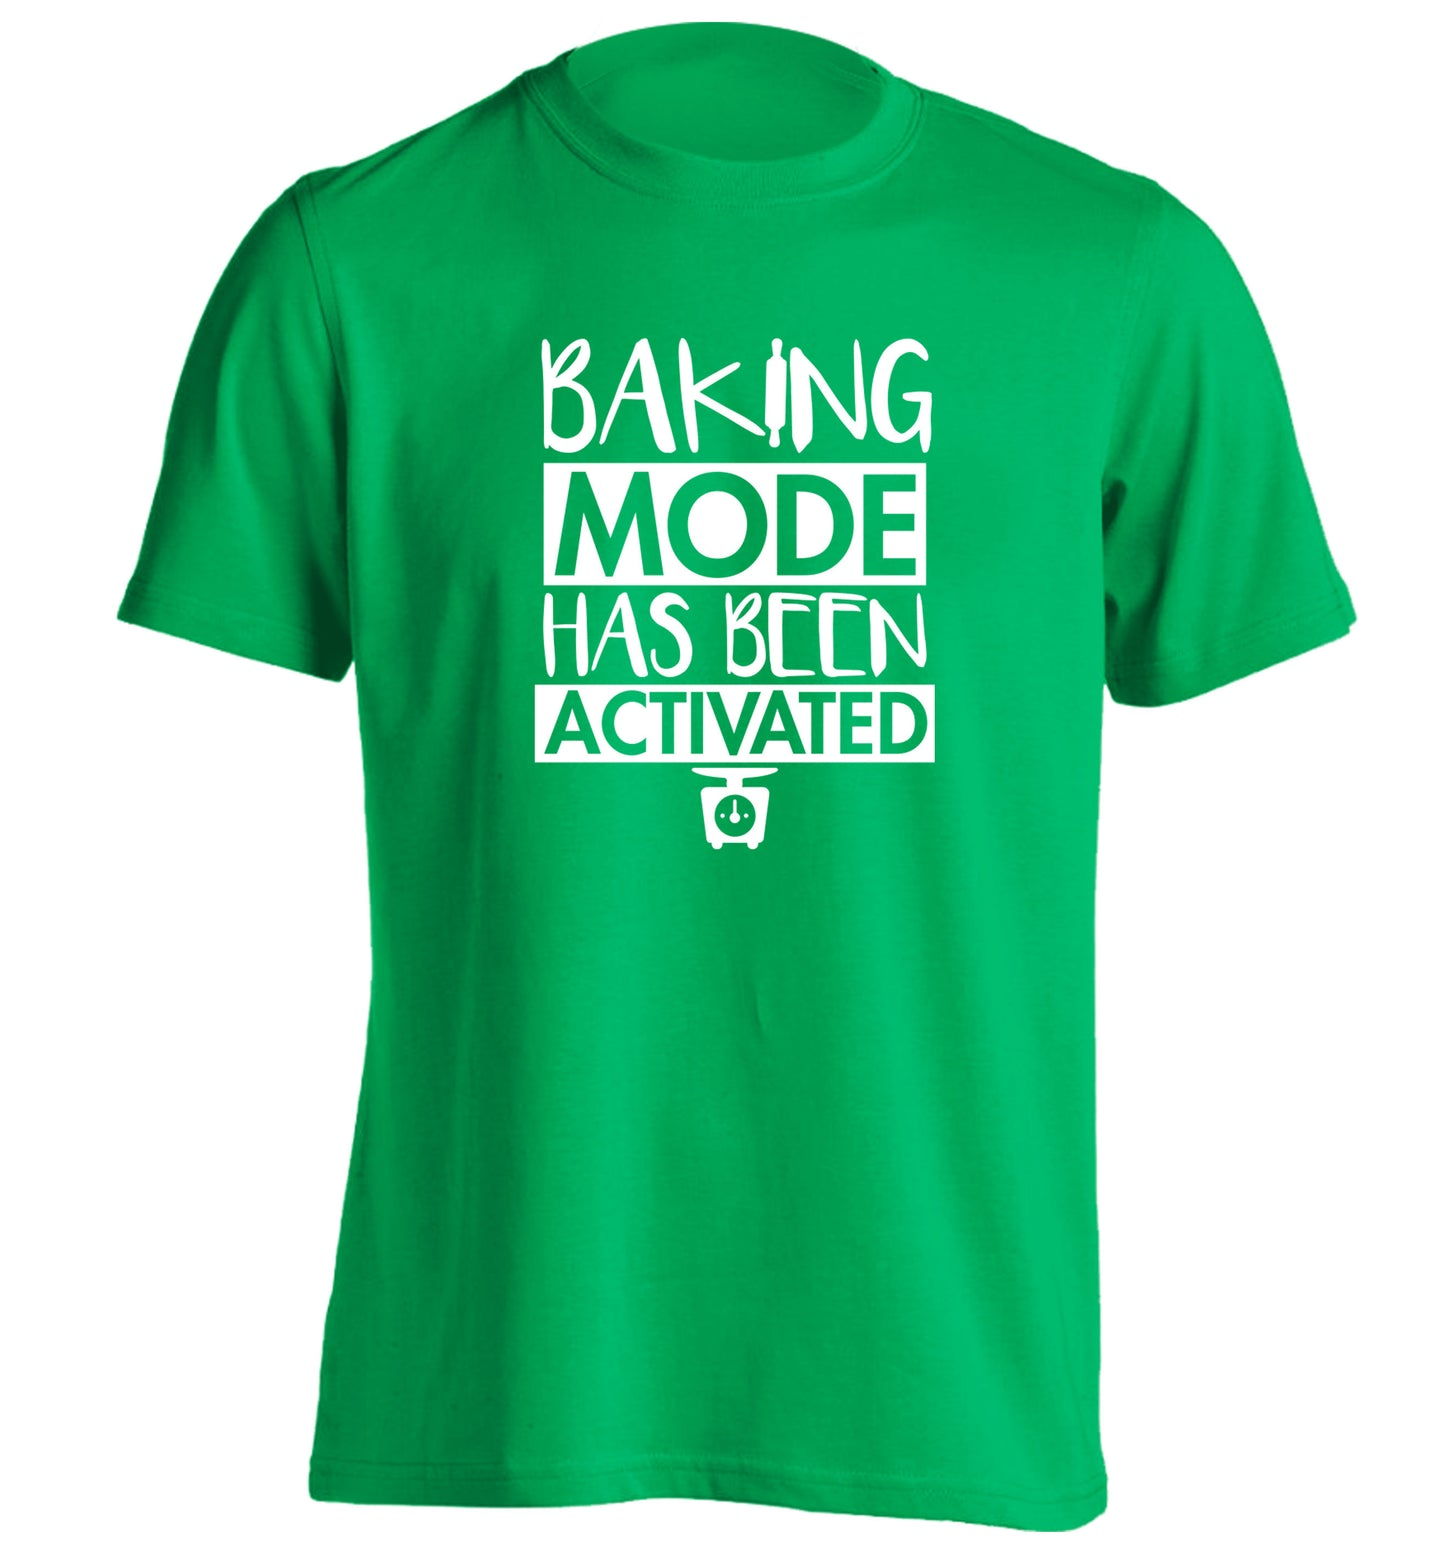 Baking mode has been activated adults unisex green Tshirt 2XL